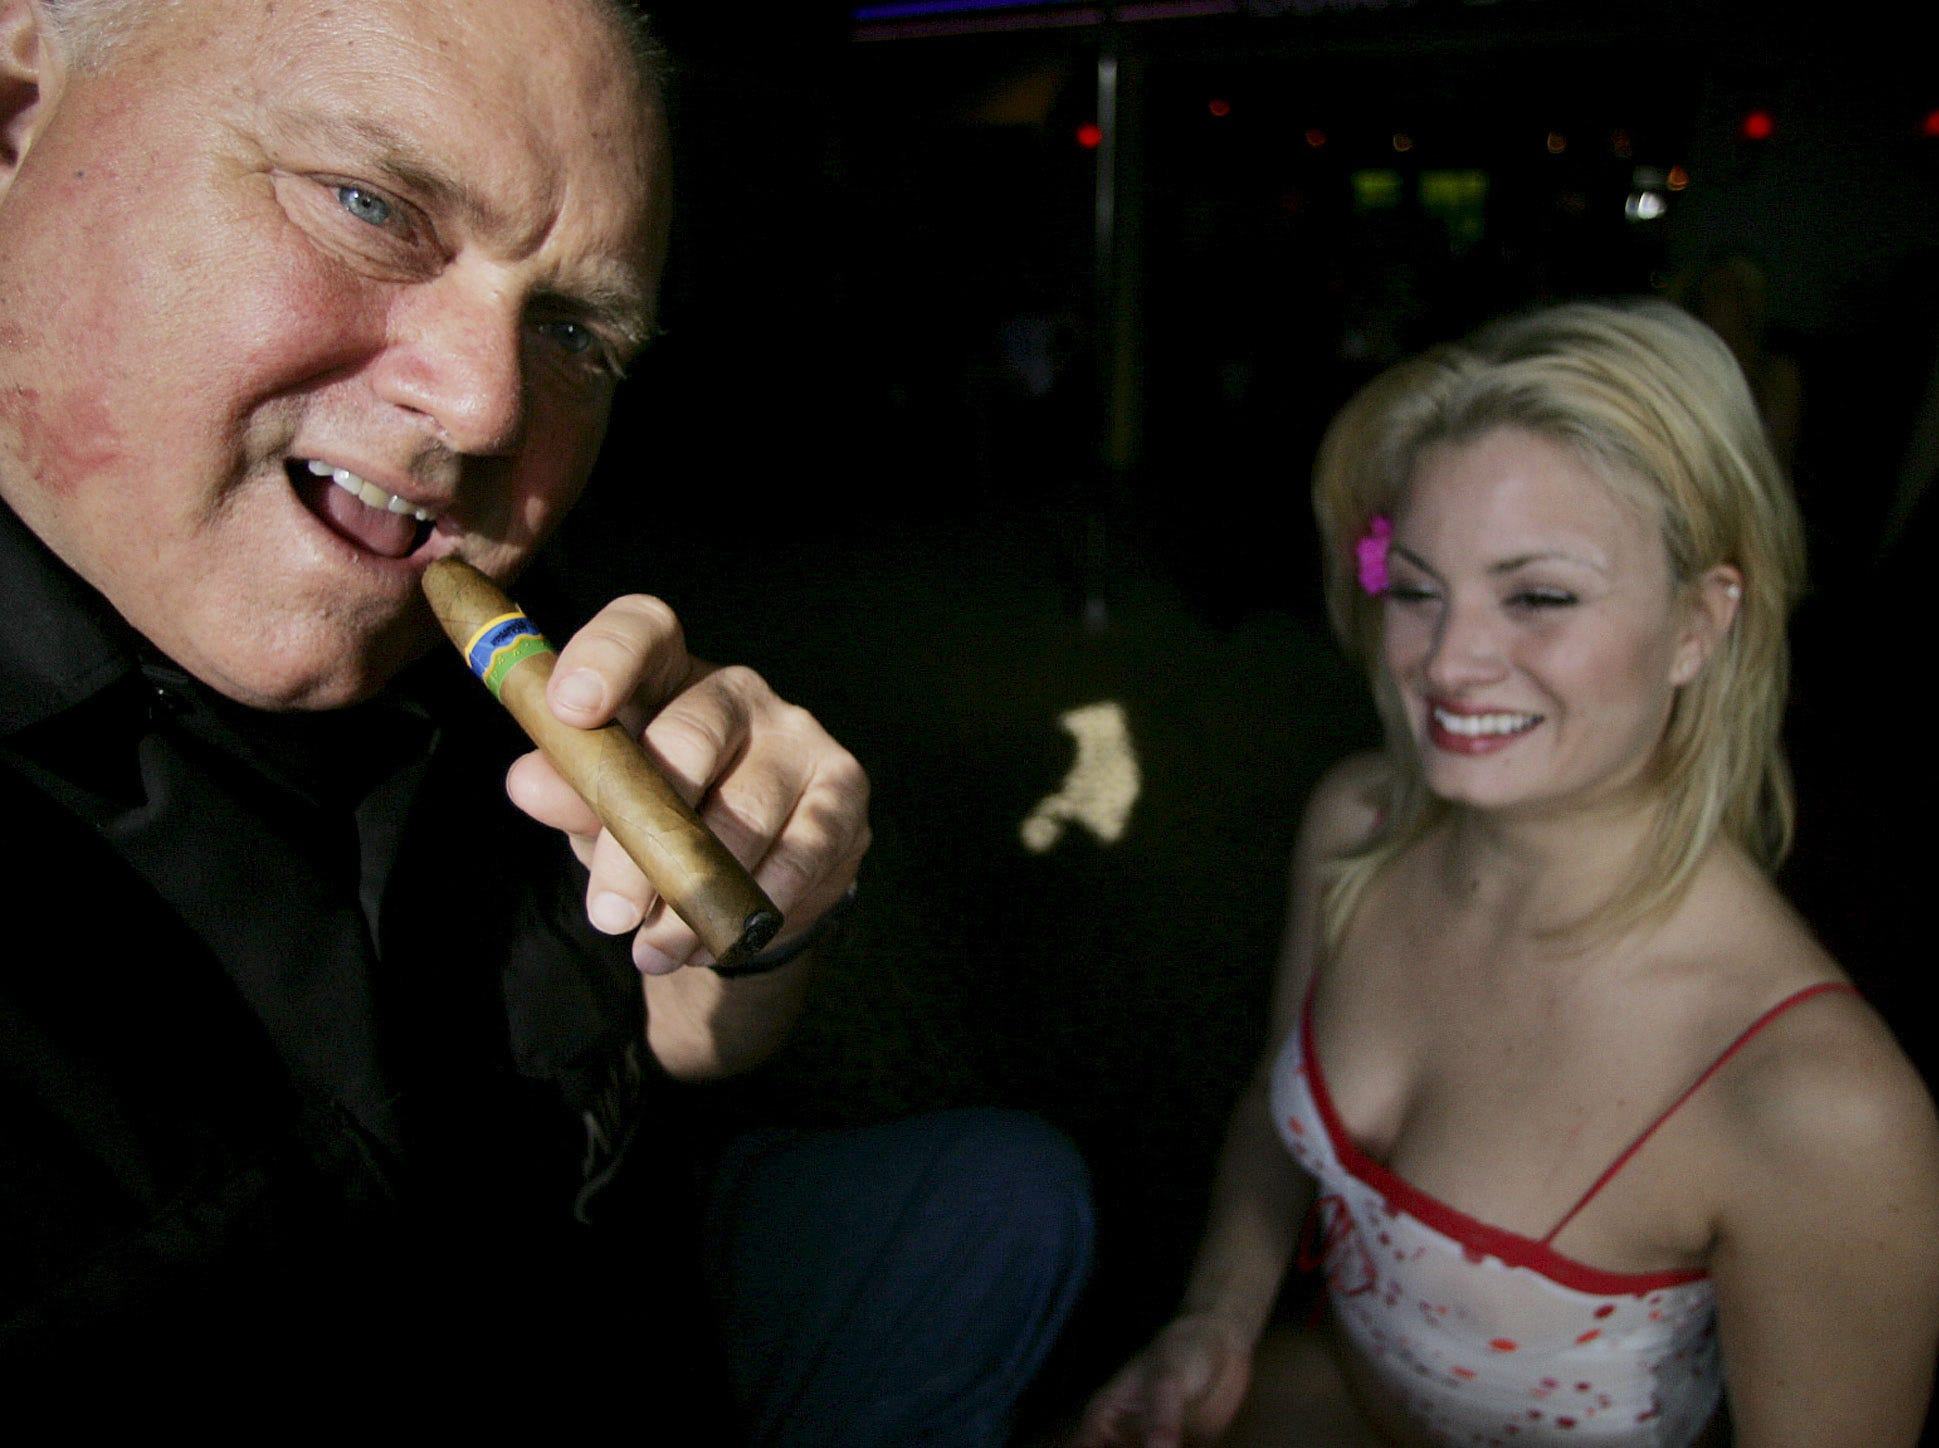 Moonlite BunnyRanch owner Dennis Hof smokes a cigar at his brothel's entrance, Thursday, April 7, 2005, in Mound House, Nev. At right is  Sierra, a prostitute at the brothel. Although county governments collect license fees, the state of Nevada has never  taxed brothels . If an industry lobbying group and an anti-prostitution lawmaker have their way, that could change this year. (AP Photo/Brad Horn)